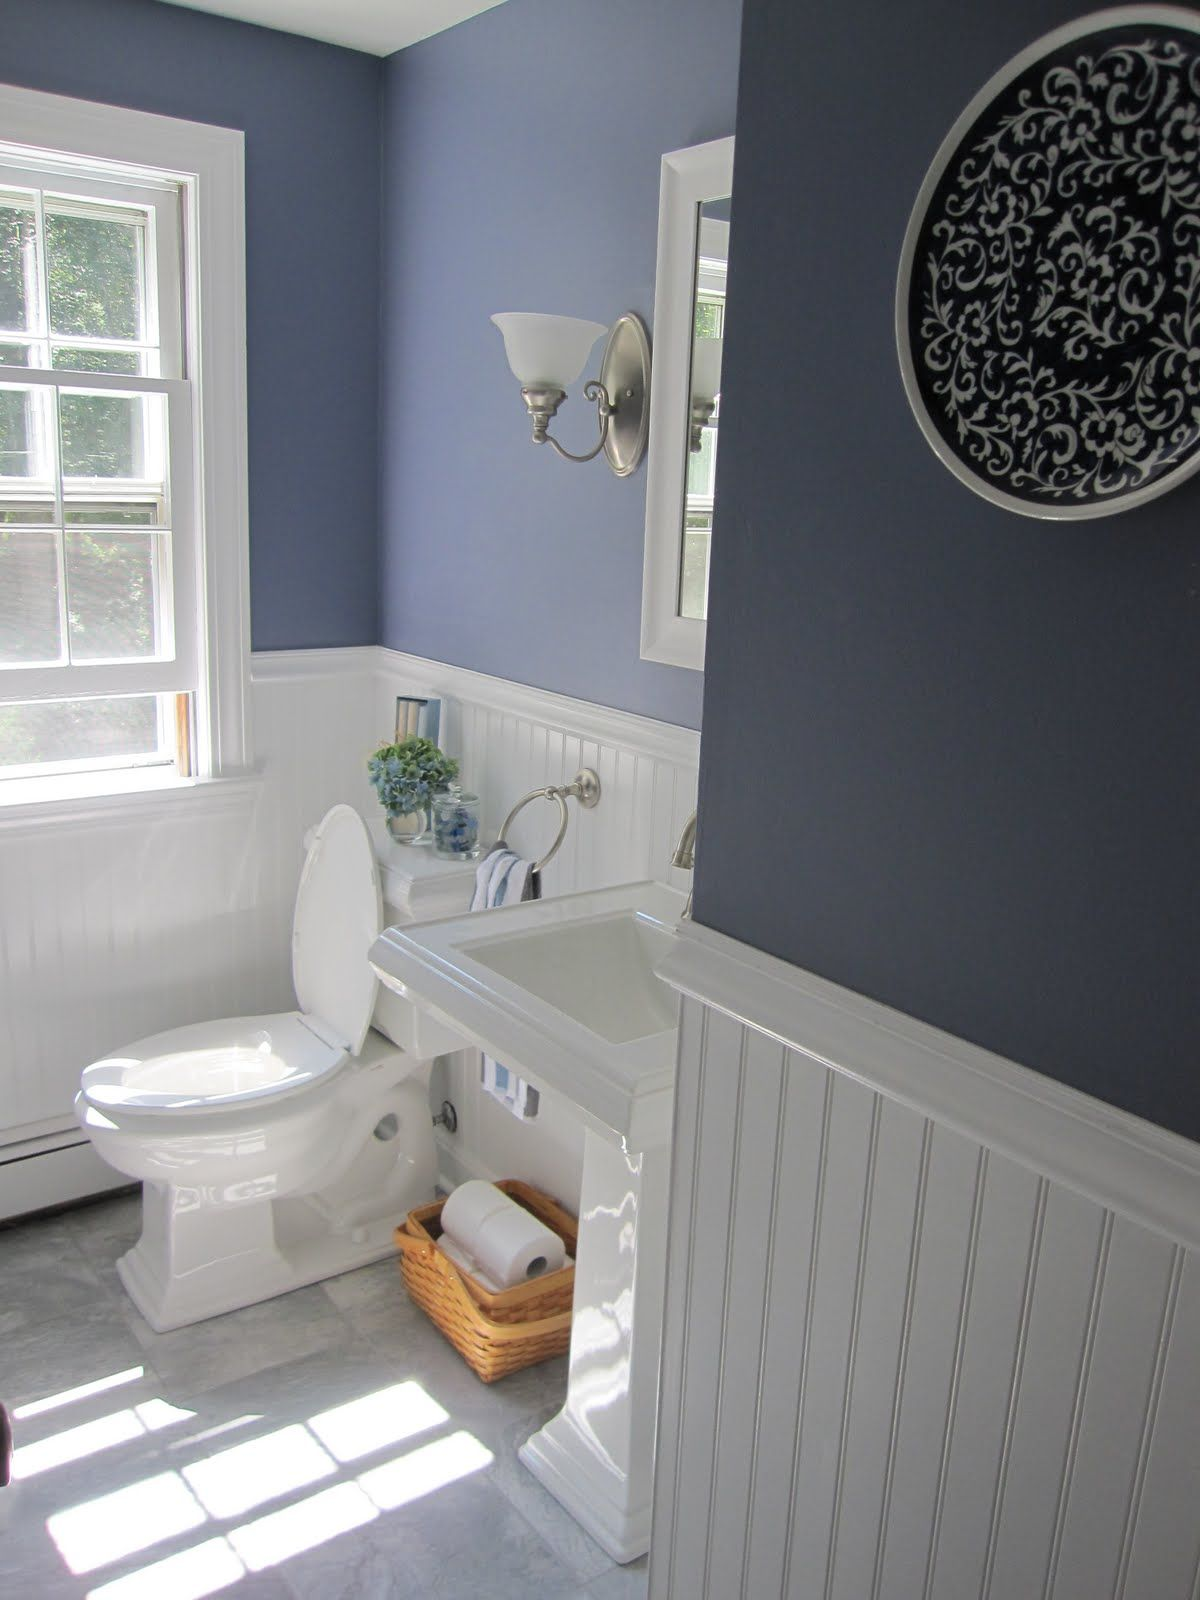 Gorgeous bathroom remodel ideas for small space and master bathroom also  amazing plans on budget  beautiful bathroom remodel ideas with simple  square. 25  Stylish Wainscoting Ideas   The white  Love this and Love the